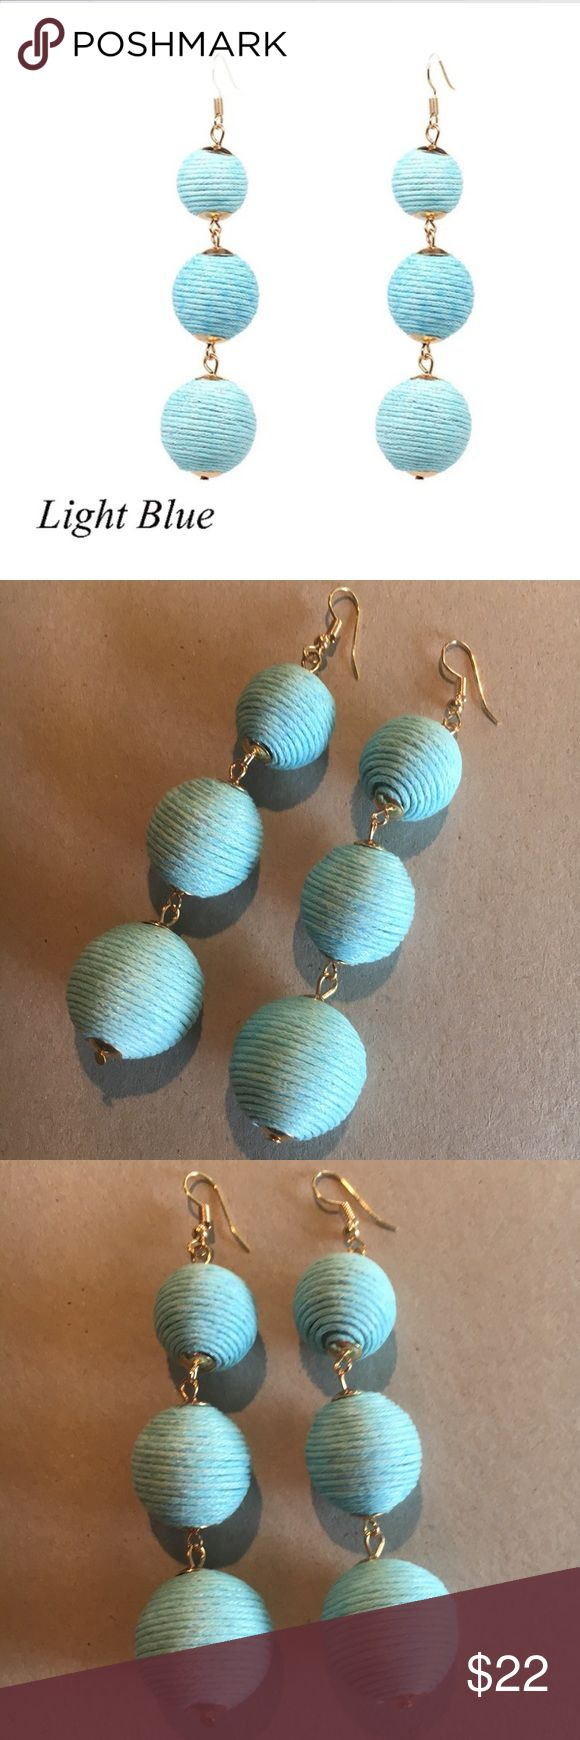 """As seen on Today w/KathiLee & Hoda PomPom earrings Fun Pom Pom thread wrapped 3 tiered ball earrings in LIGHT AQUA BLUE.  This item is a new Boutique item in original packaging but without tags.  Please review all photos and comments prior to purchasing.  Material: Gold plated alloy, Weight: 20g, Dimensions: Approx 3.75""""x.75"""" Mimi's Boutique Jewelry Earrings"""